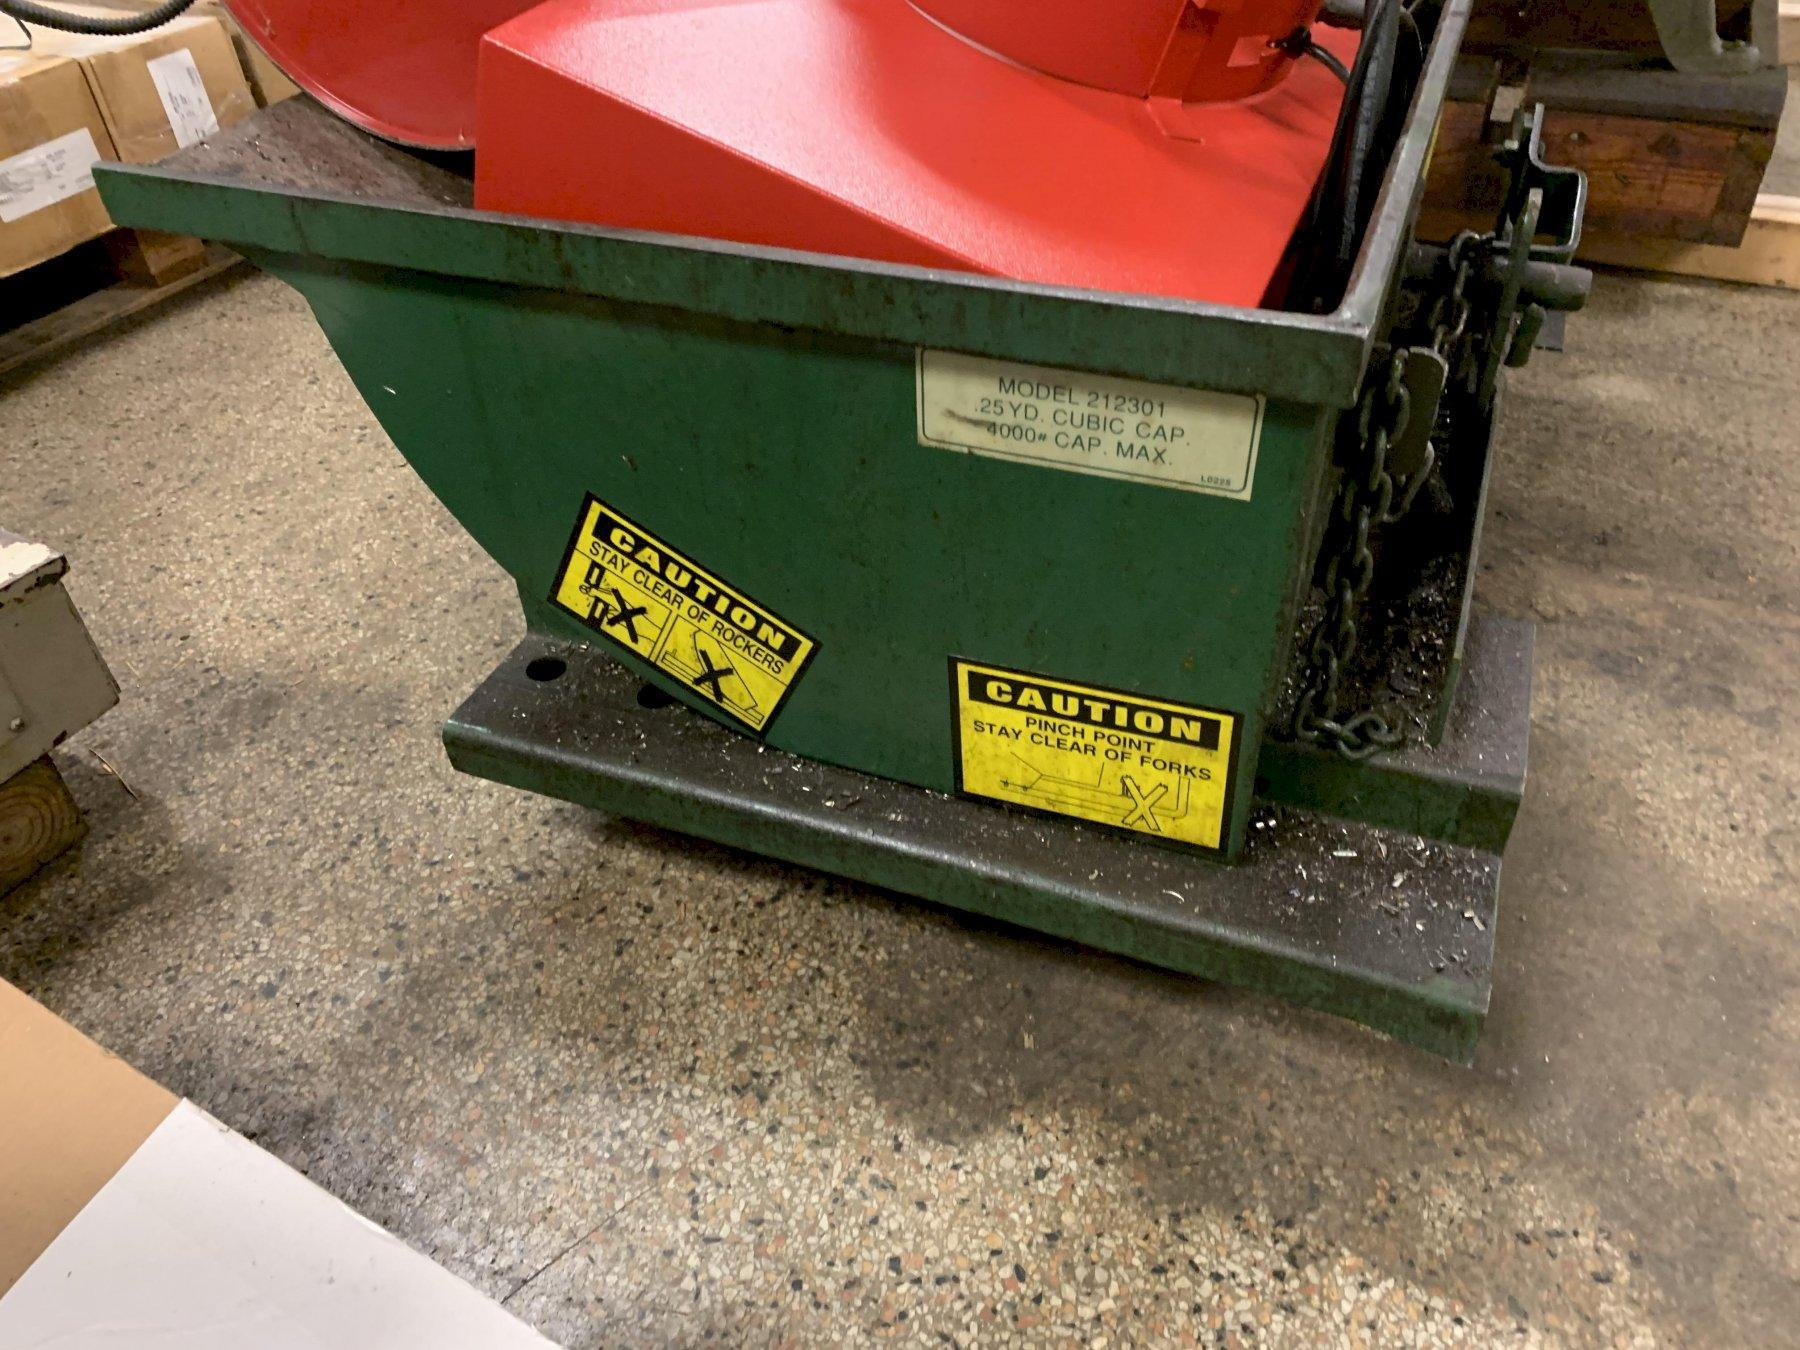 JESCO #212301 1/4 yd cubic capacity 4000# cap max low profile dumper / hopper